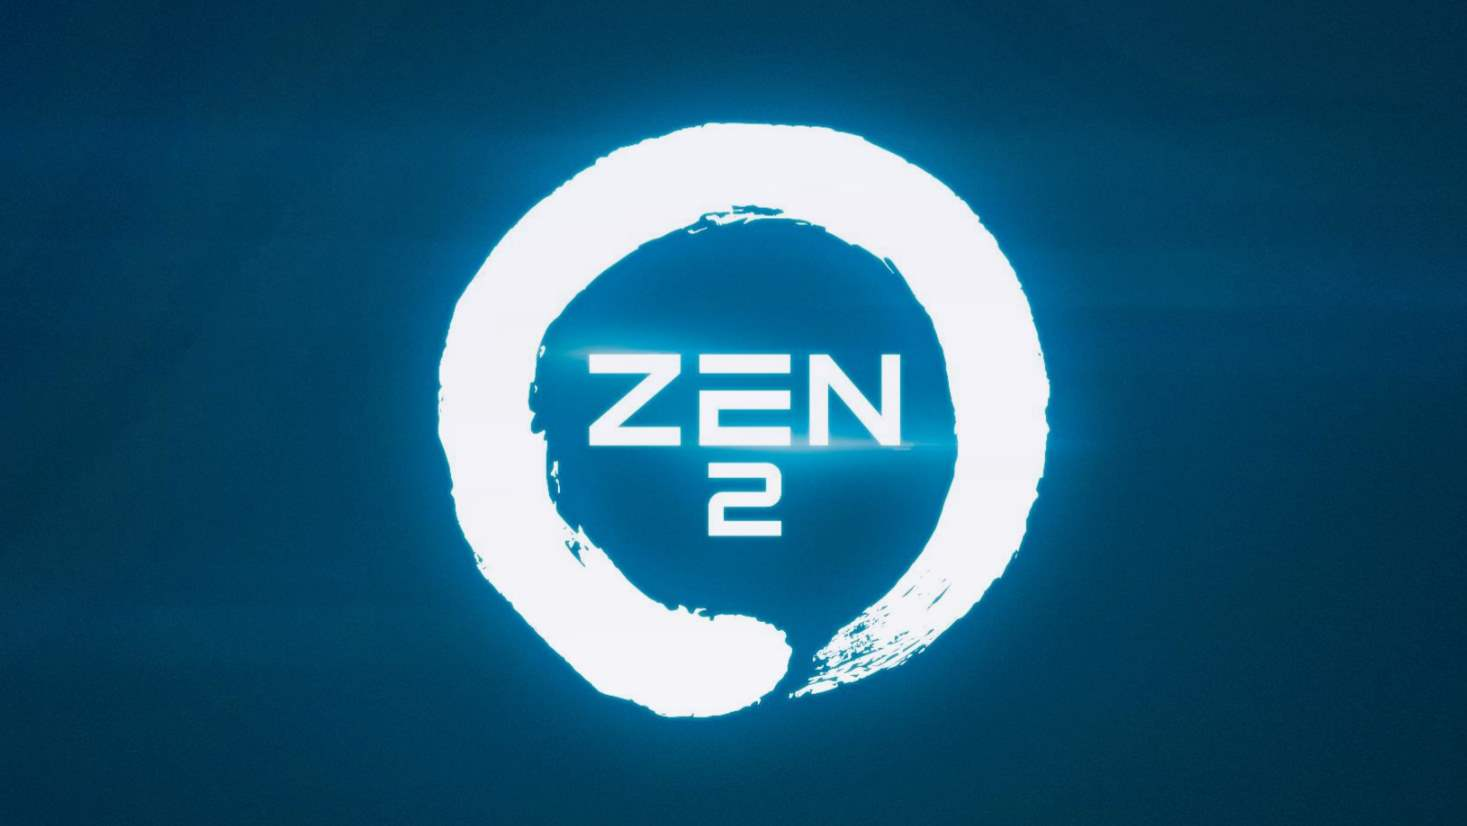 AMD Zen 2: What we know so far about the next-gen